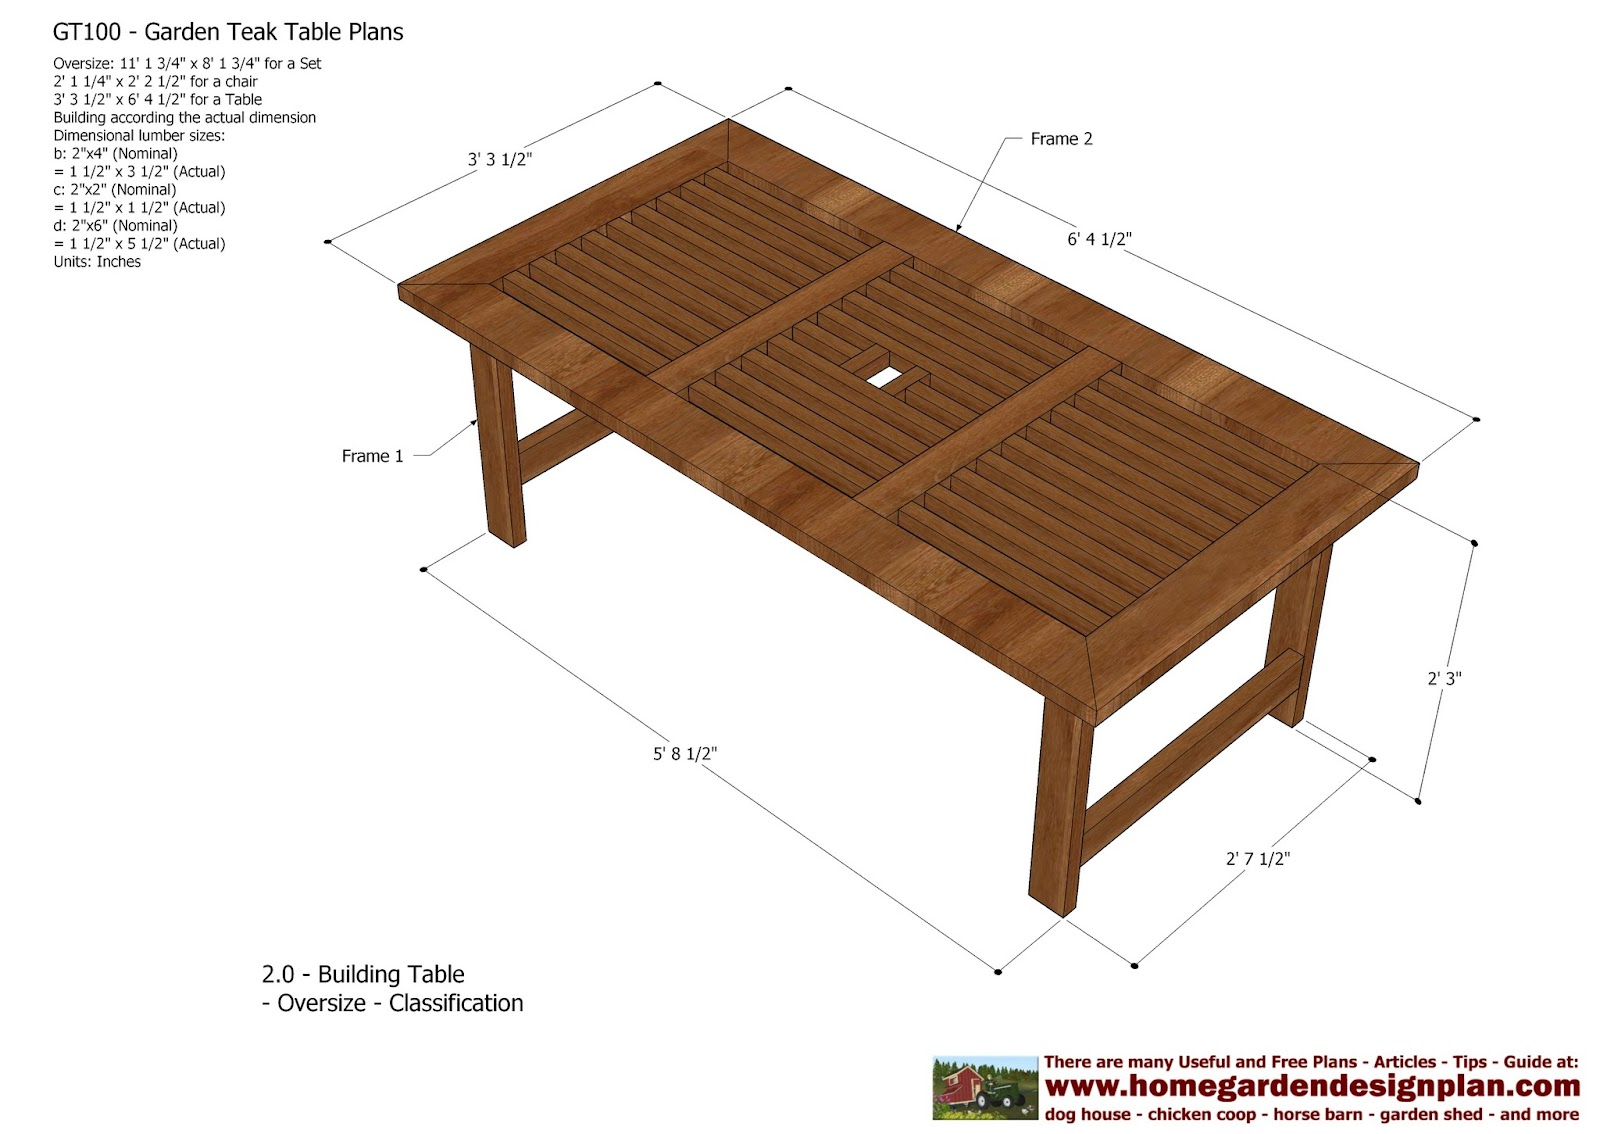 Home garden plans gt100 garden teak tables for Patio plans free